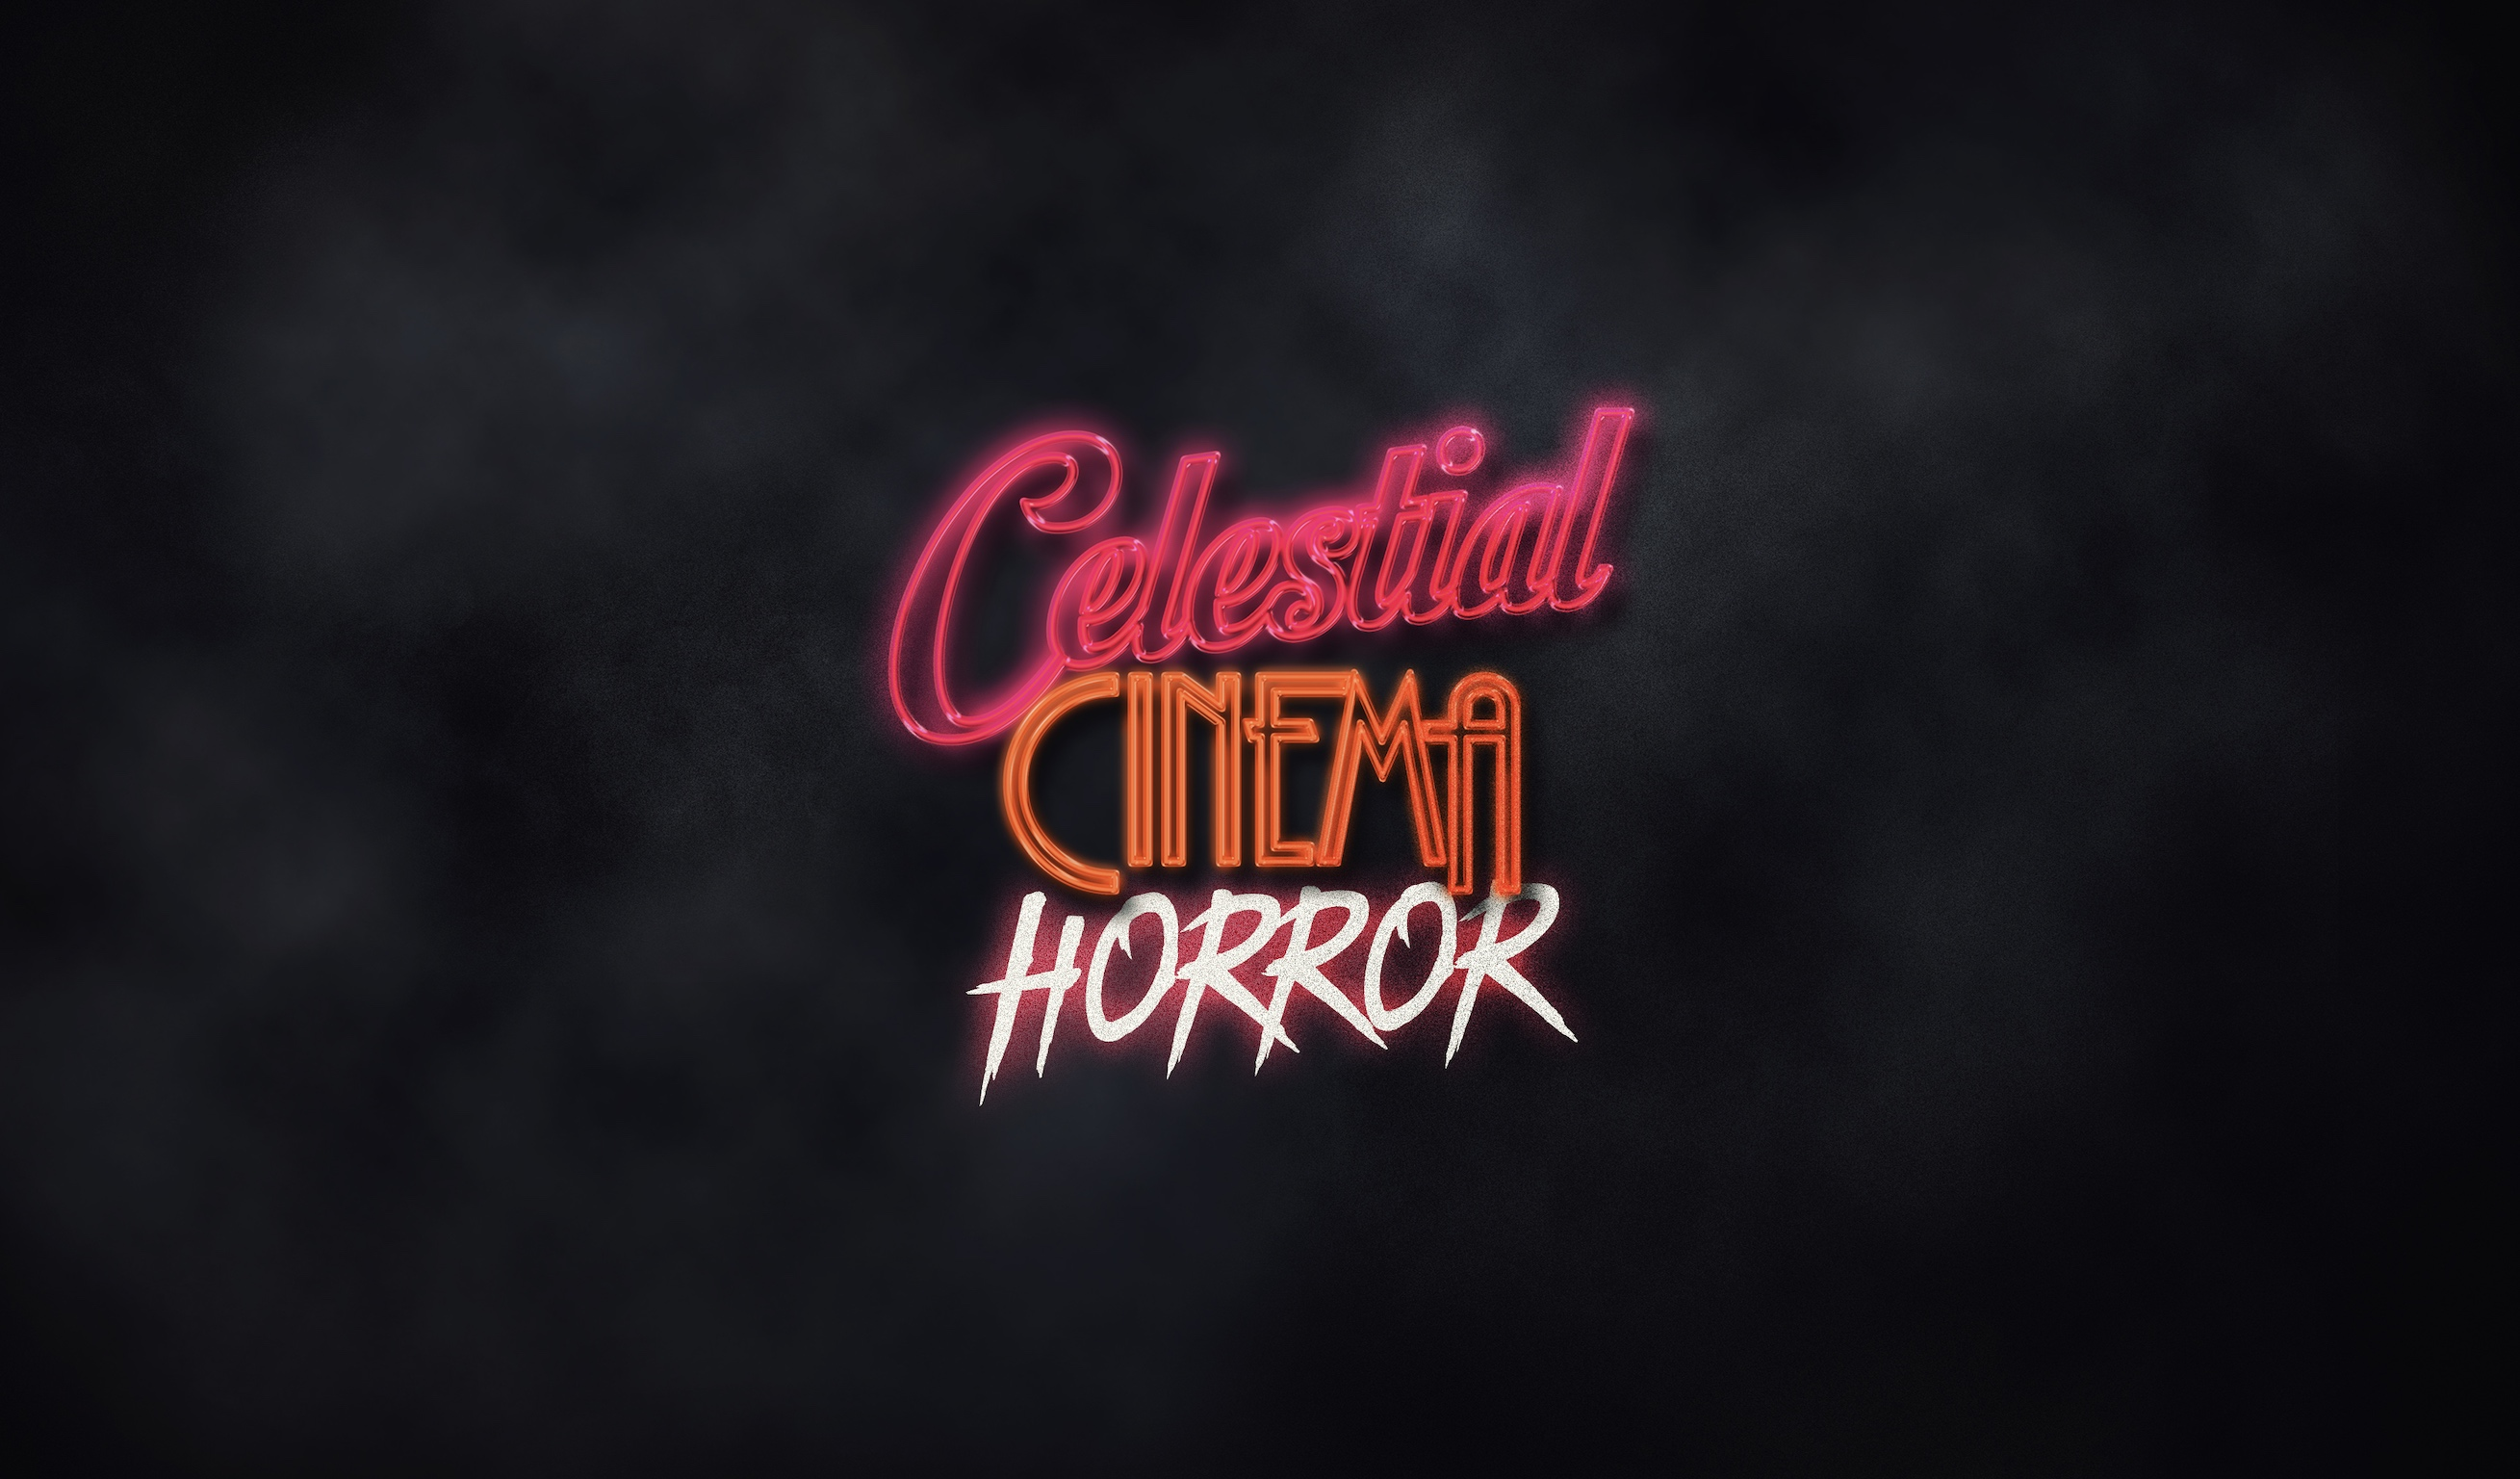 Celestial Cinema Halloween: The Witches (PG) 11AM